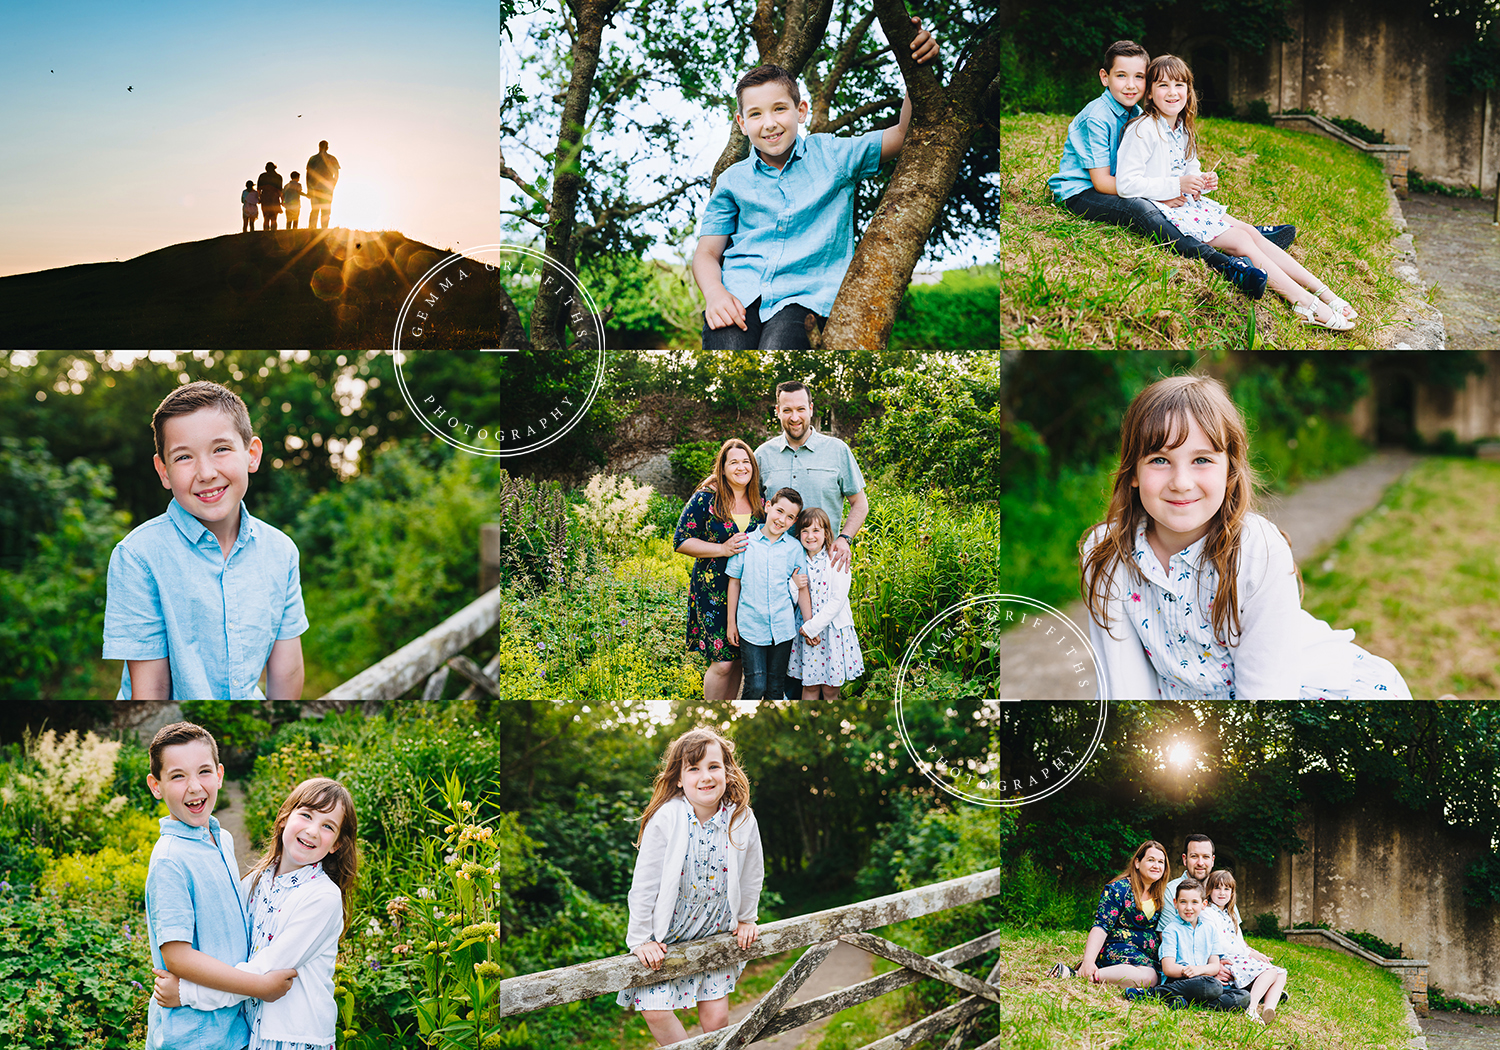 cardiff family photographer. photo shoot at Dunraven Gardens